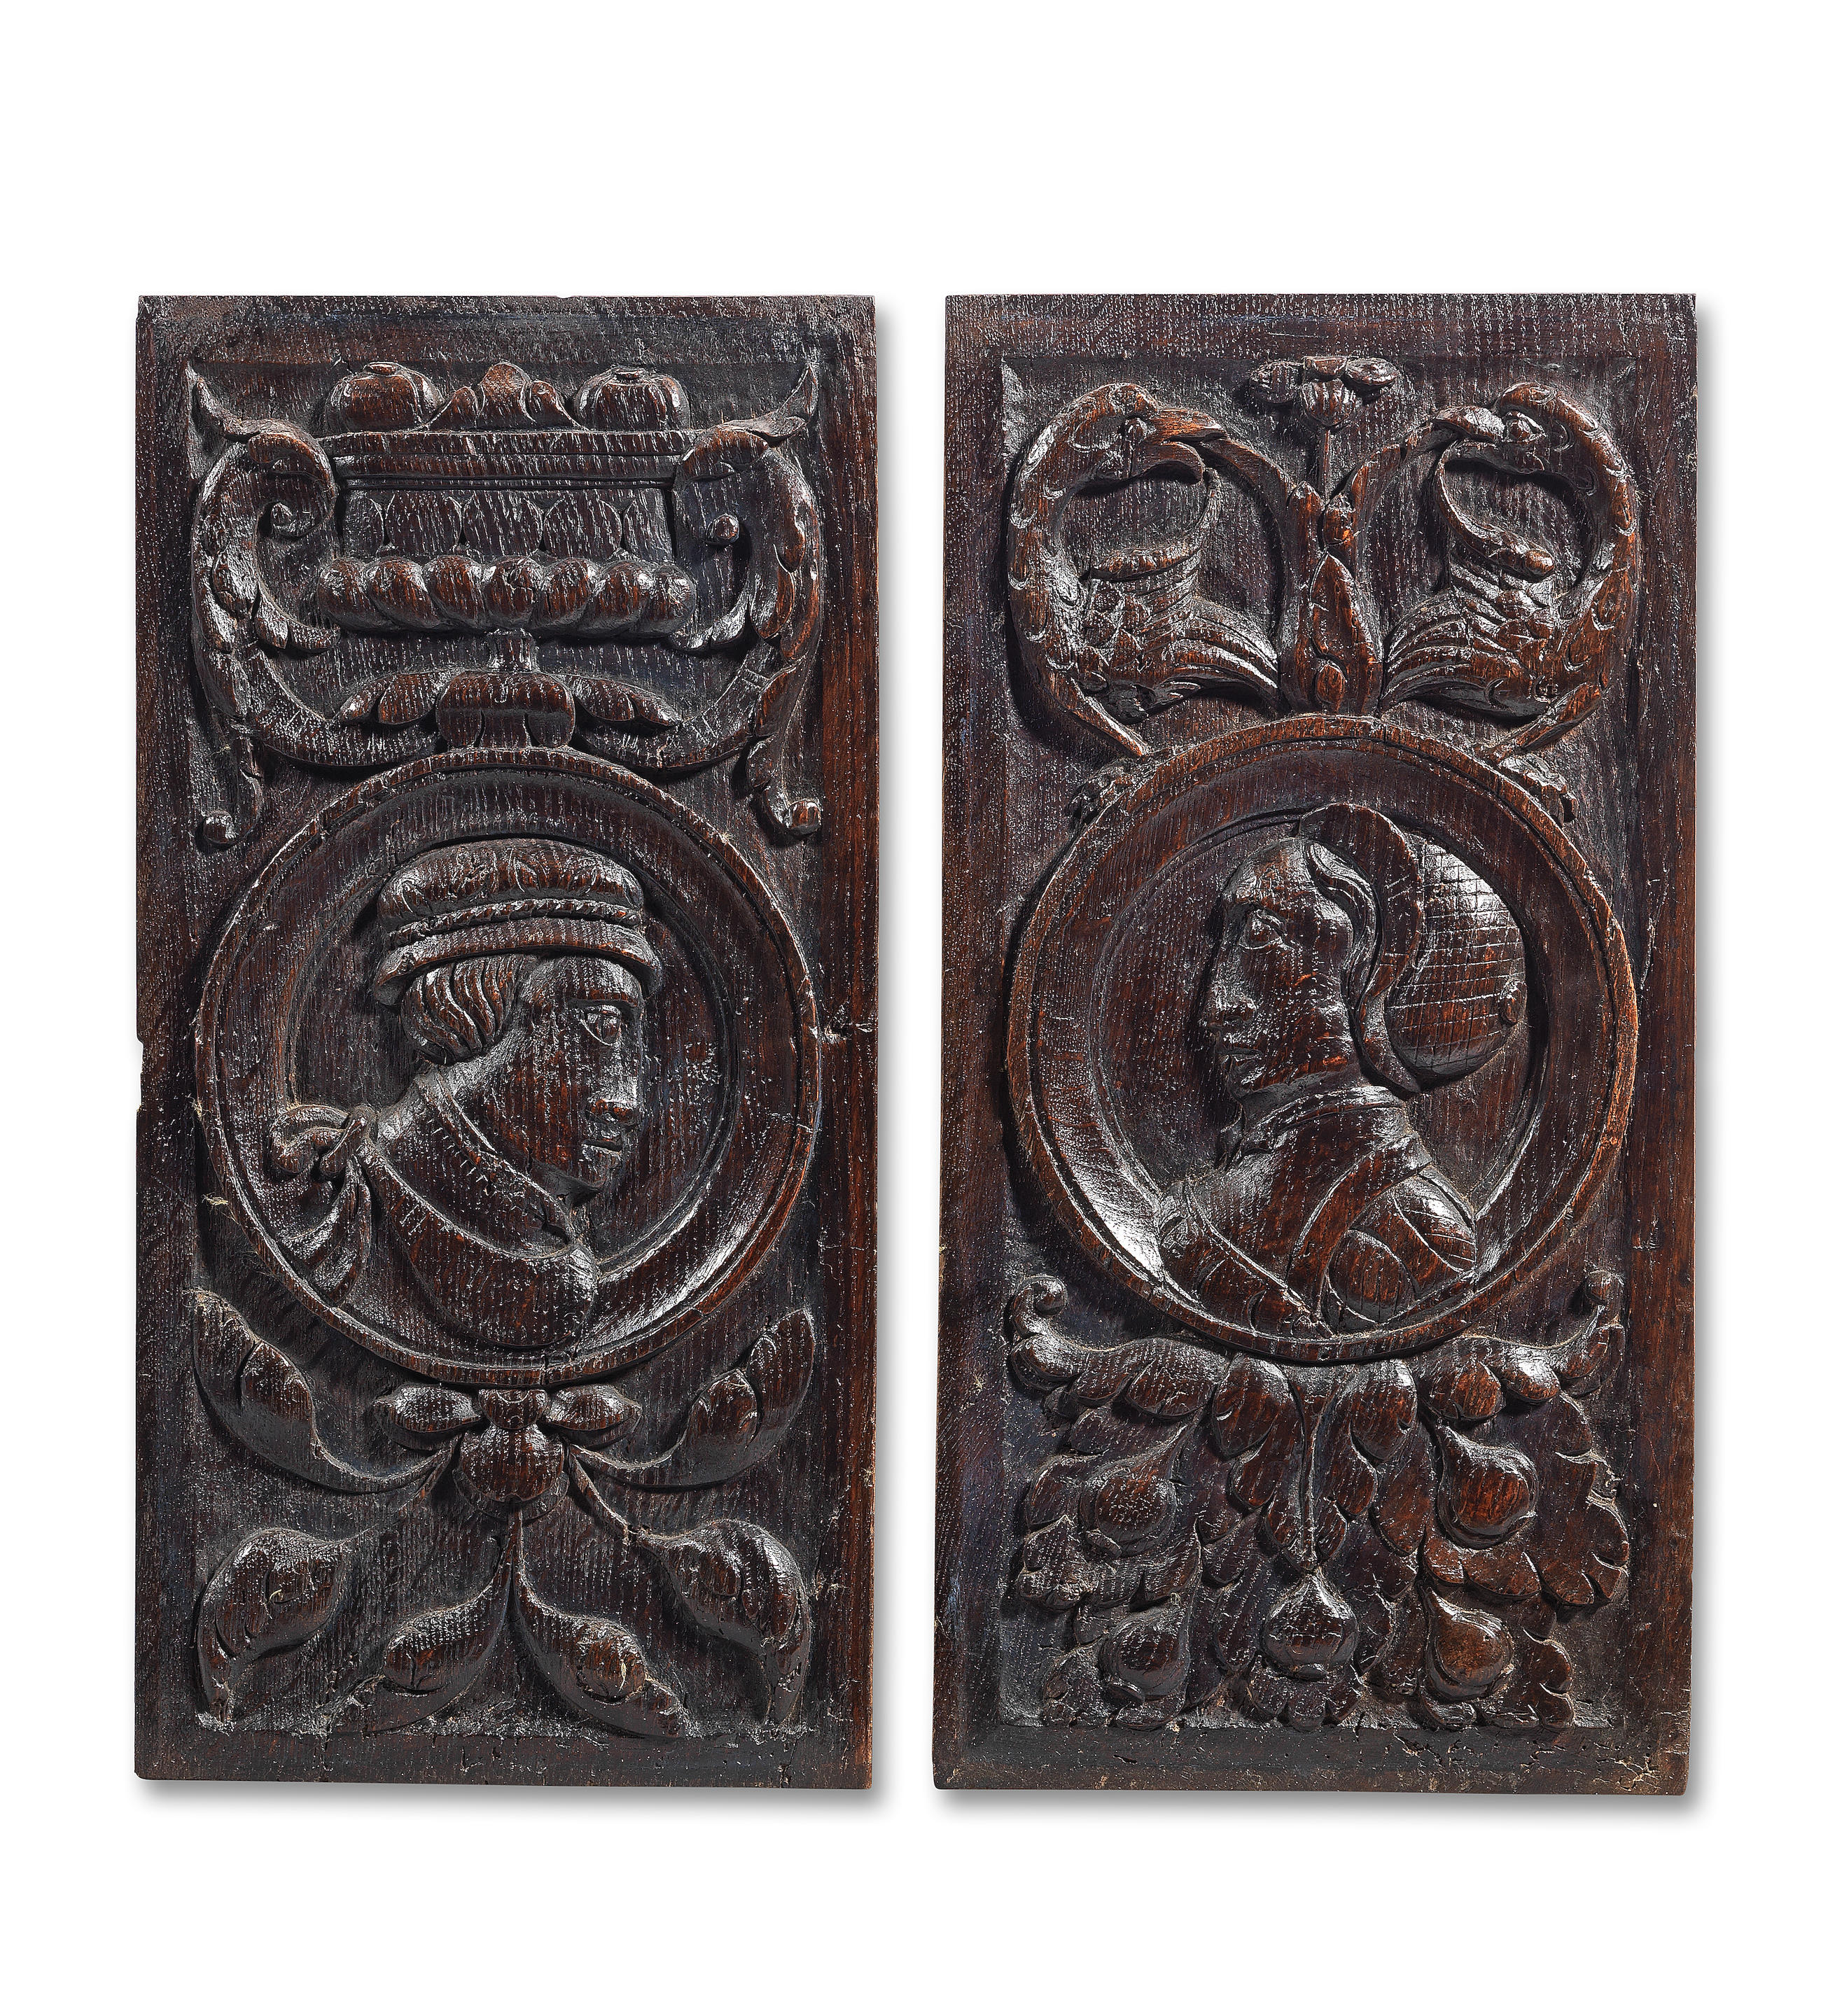 A pair of carved oak panels, French/English, circa 1550